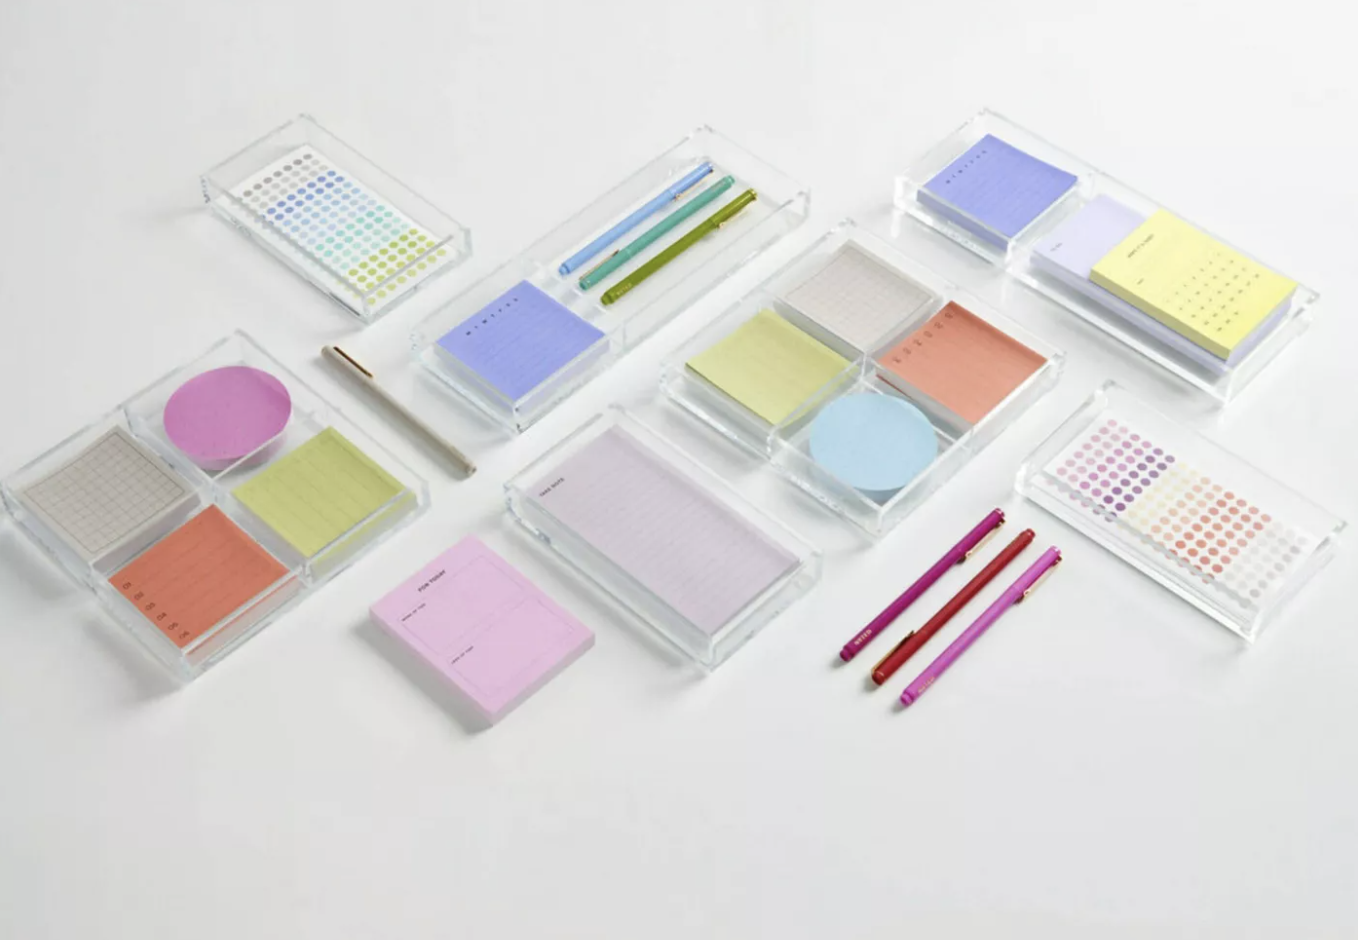 A variety of acrylic Post-it trays and organizers